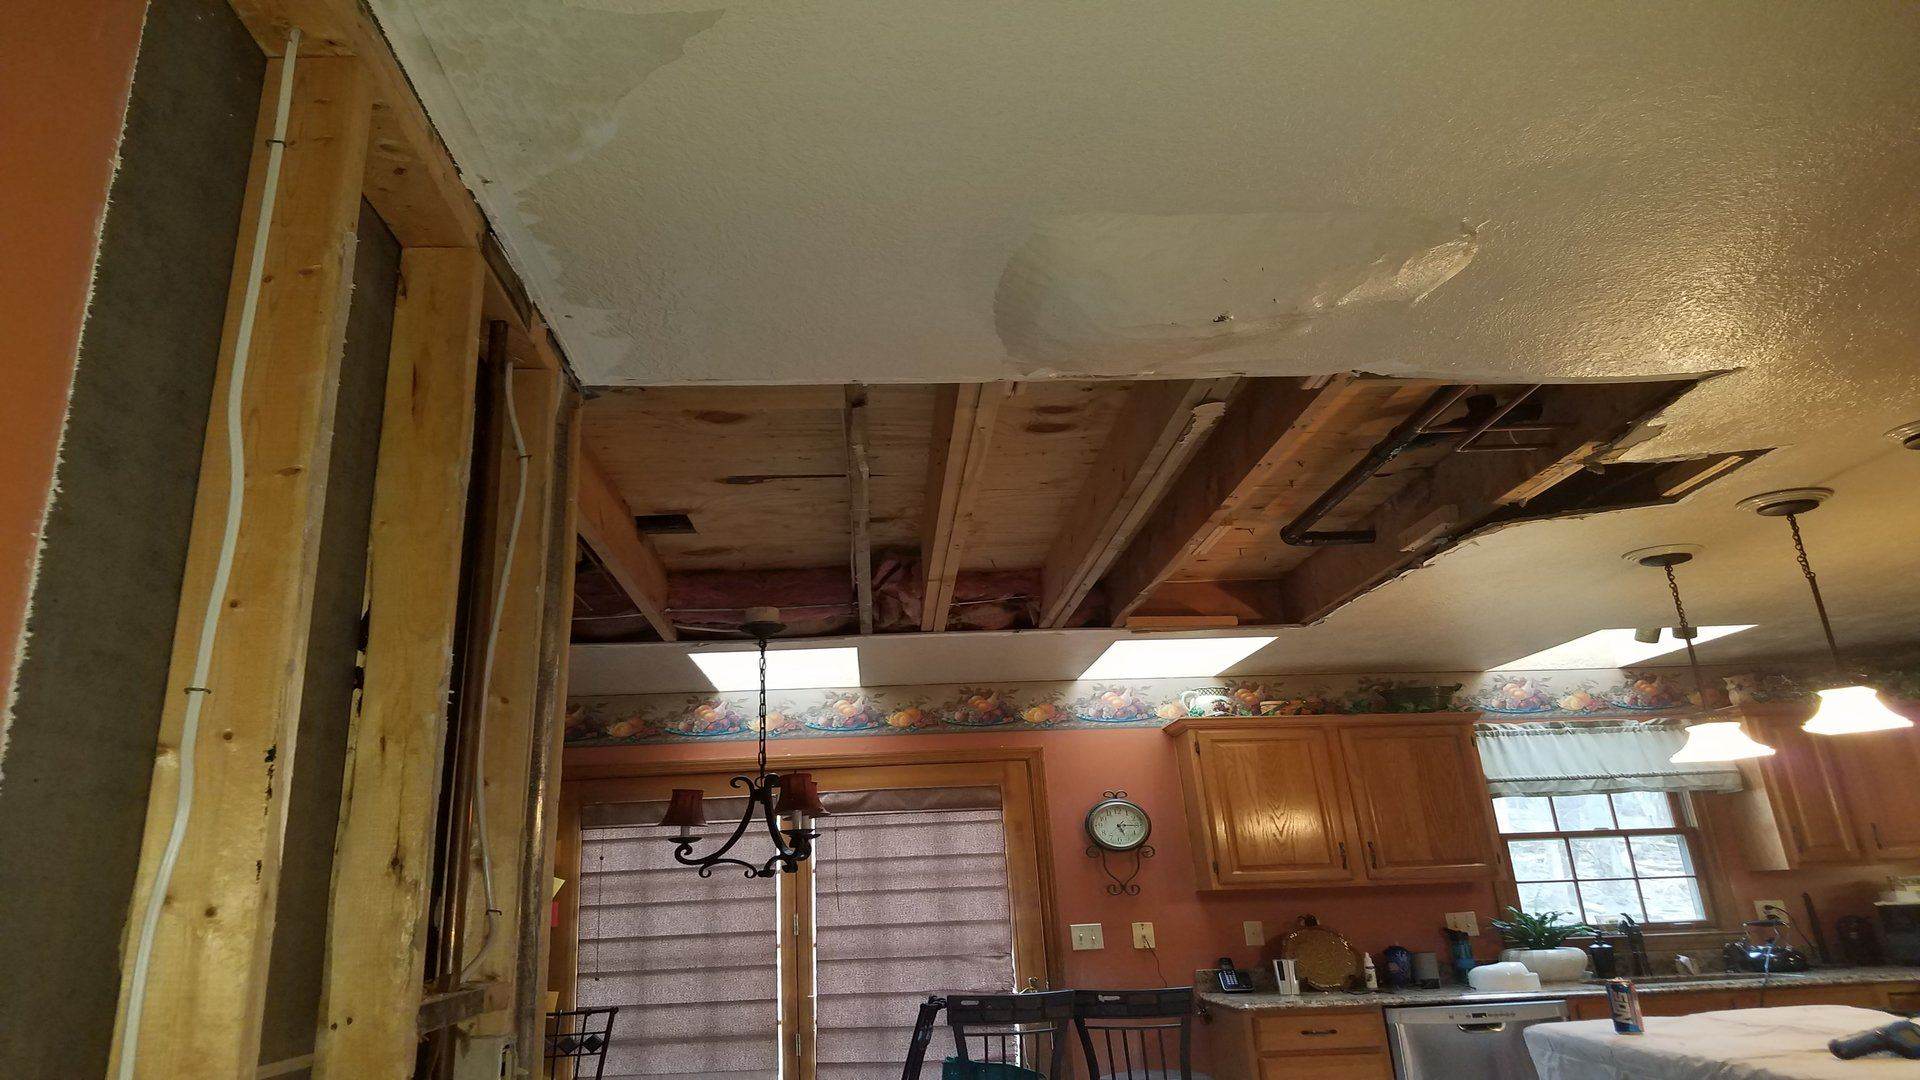 Ceiling being repaired